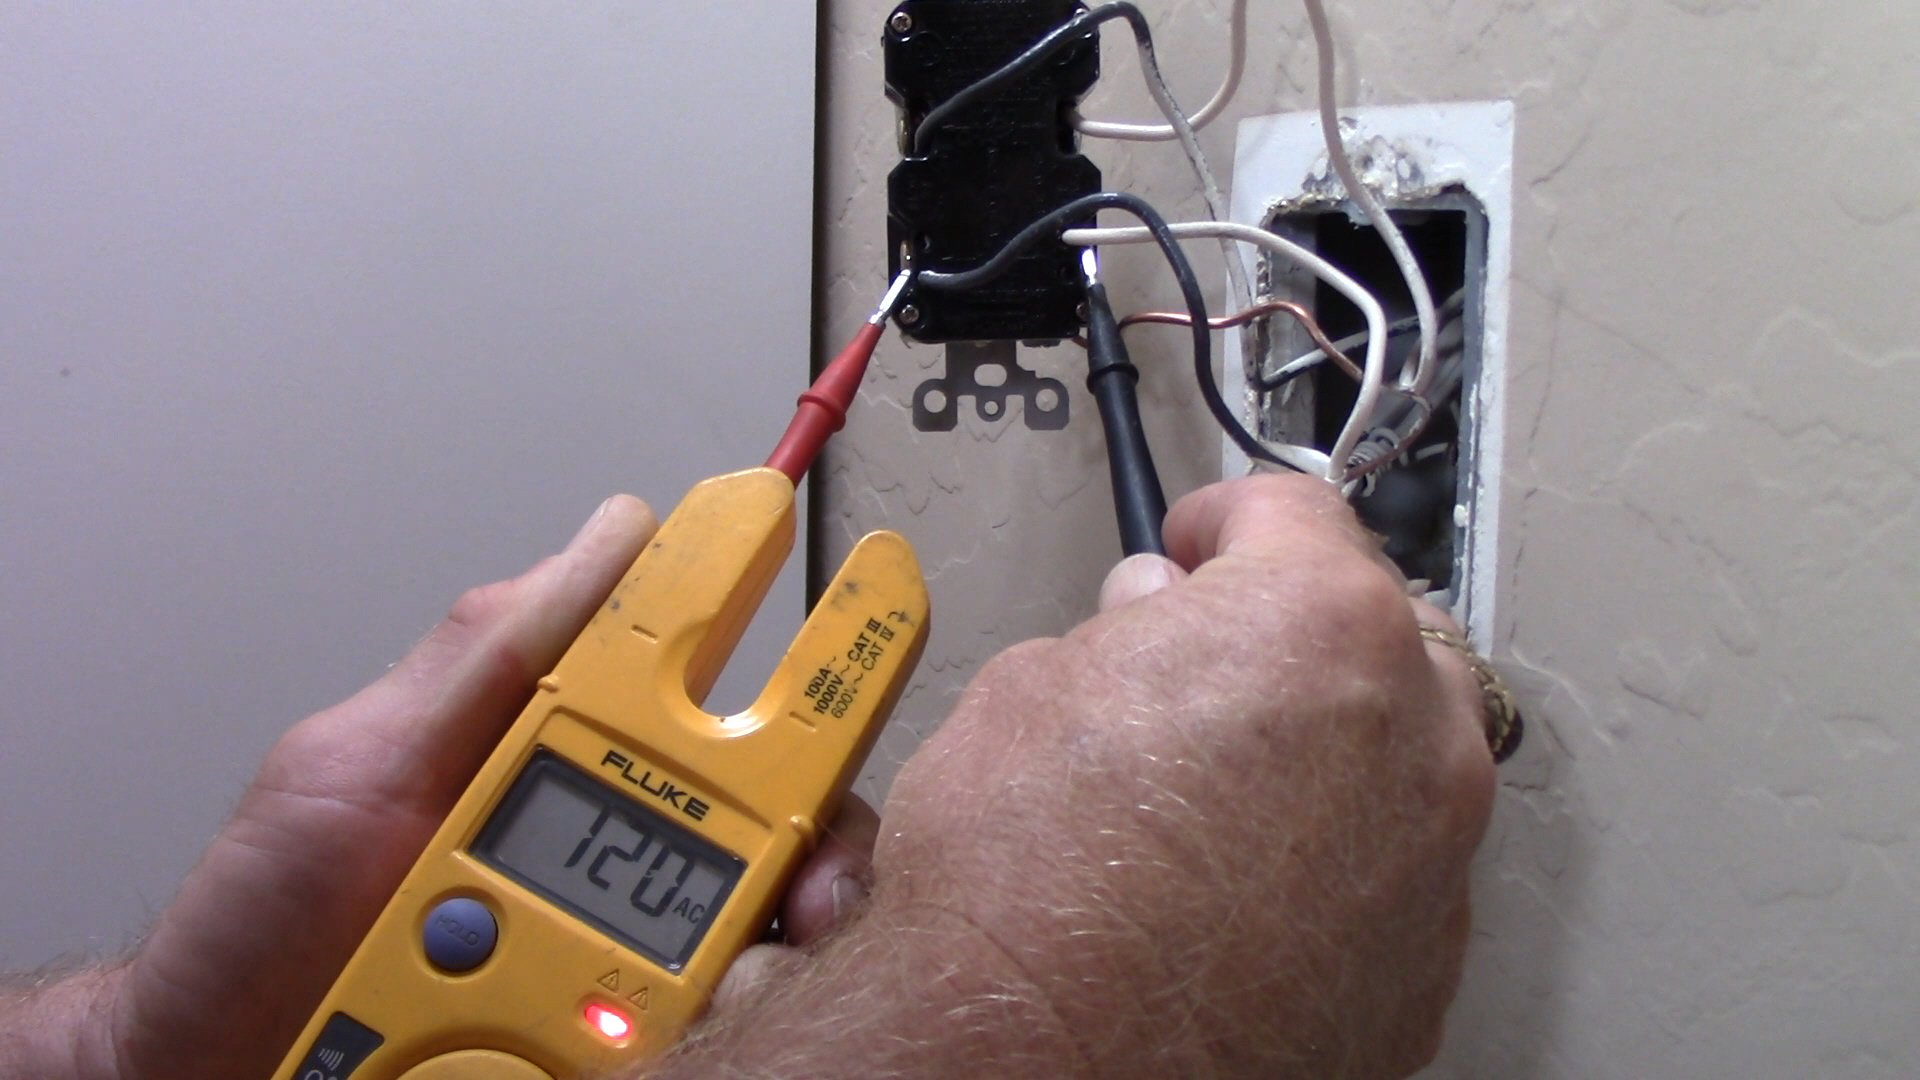 hight resolution of using my fluke t1000 multi meter i checked for voltage and i had 120v on the terminals identified as the line terminals testing from hot black wire on